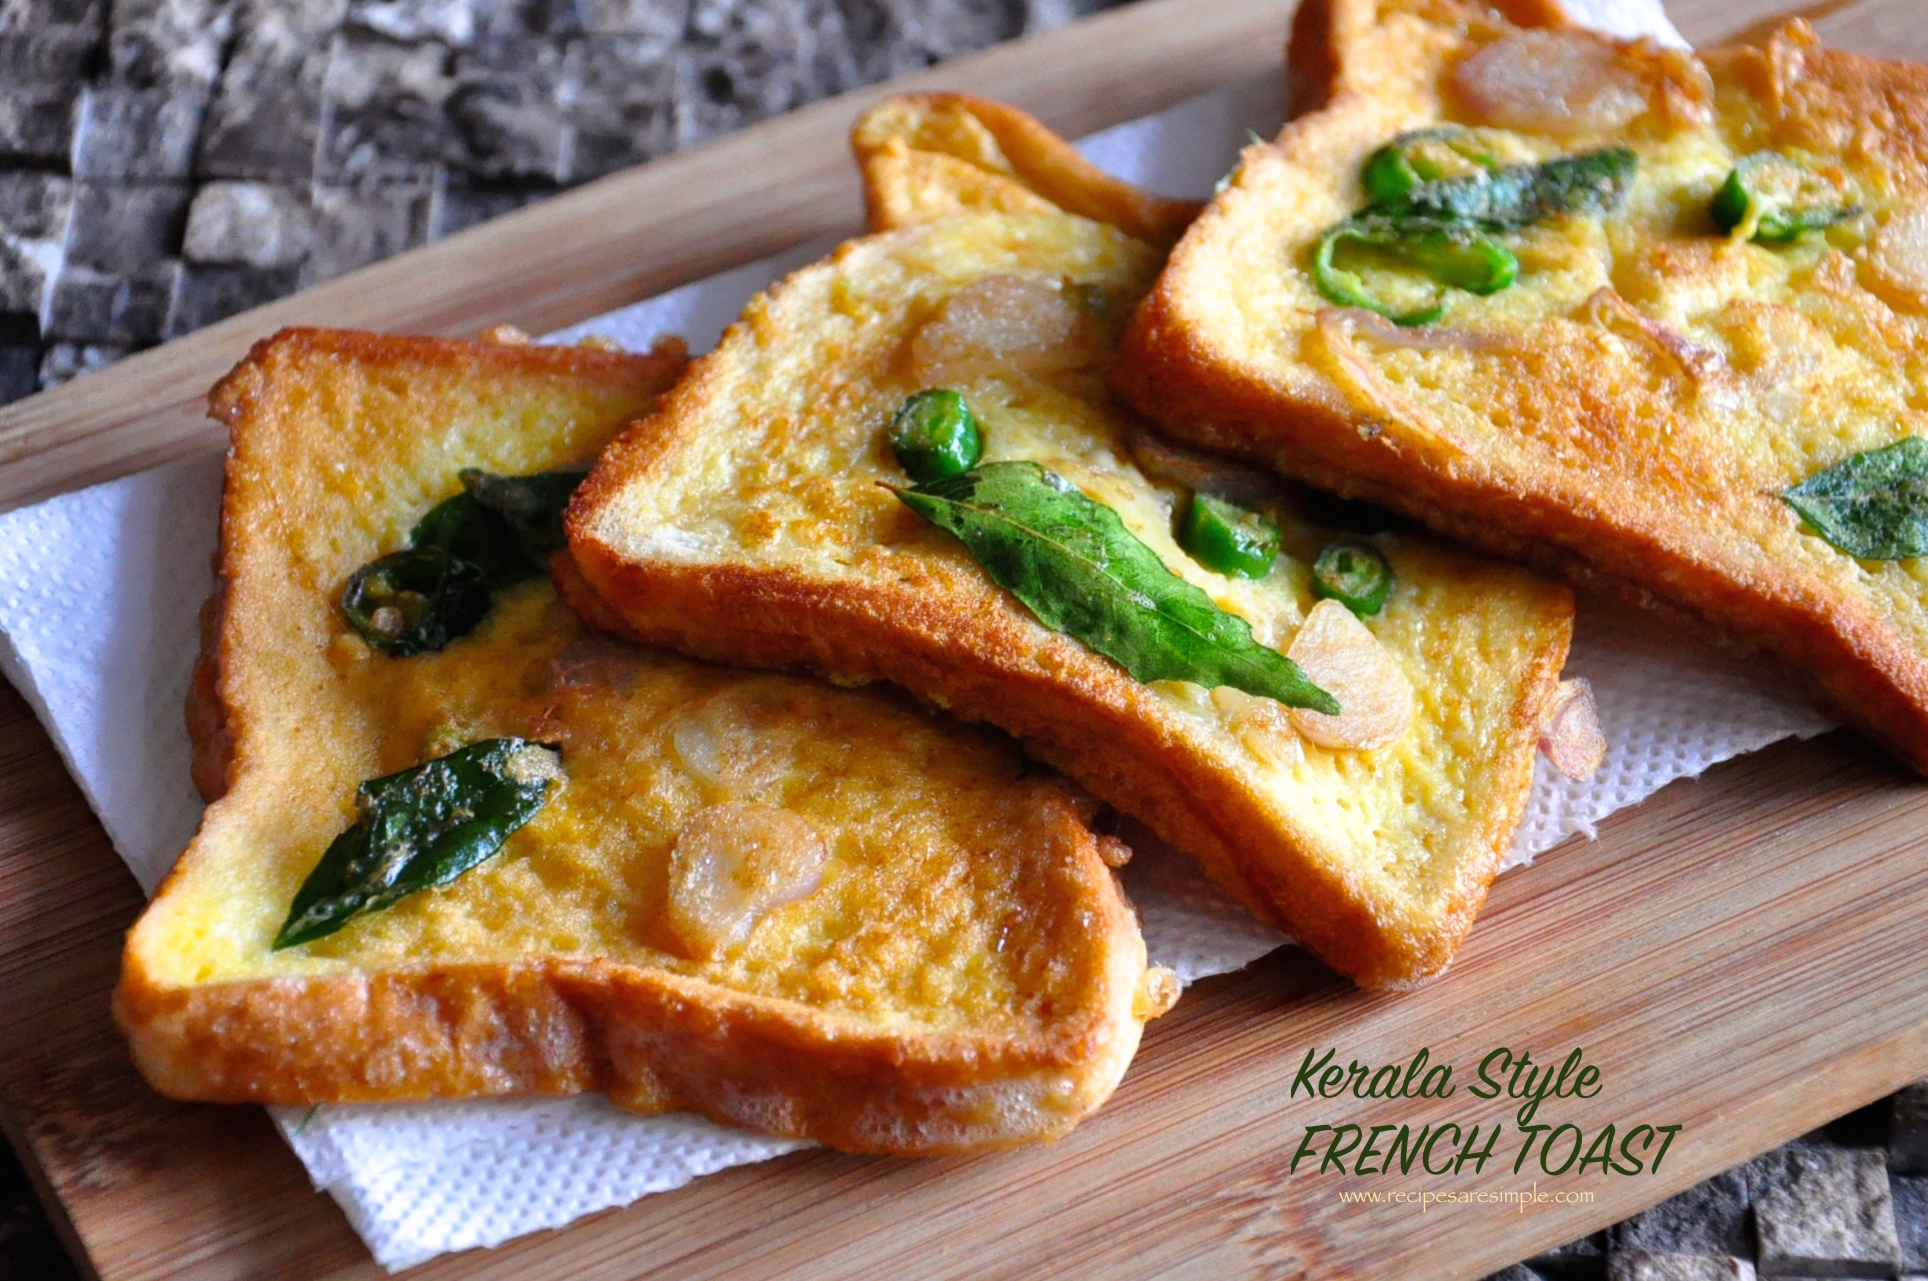 FRENCH TOAST KERALA STYLE French Toast Recipes in a few different styles